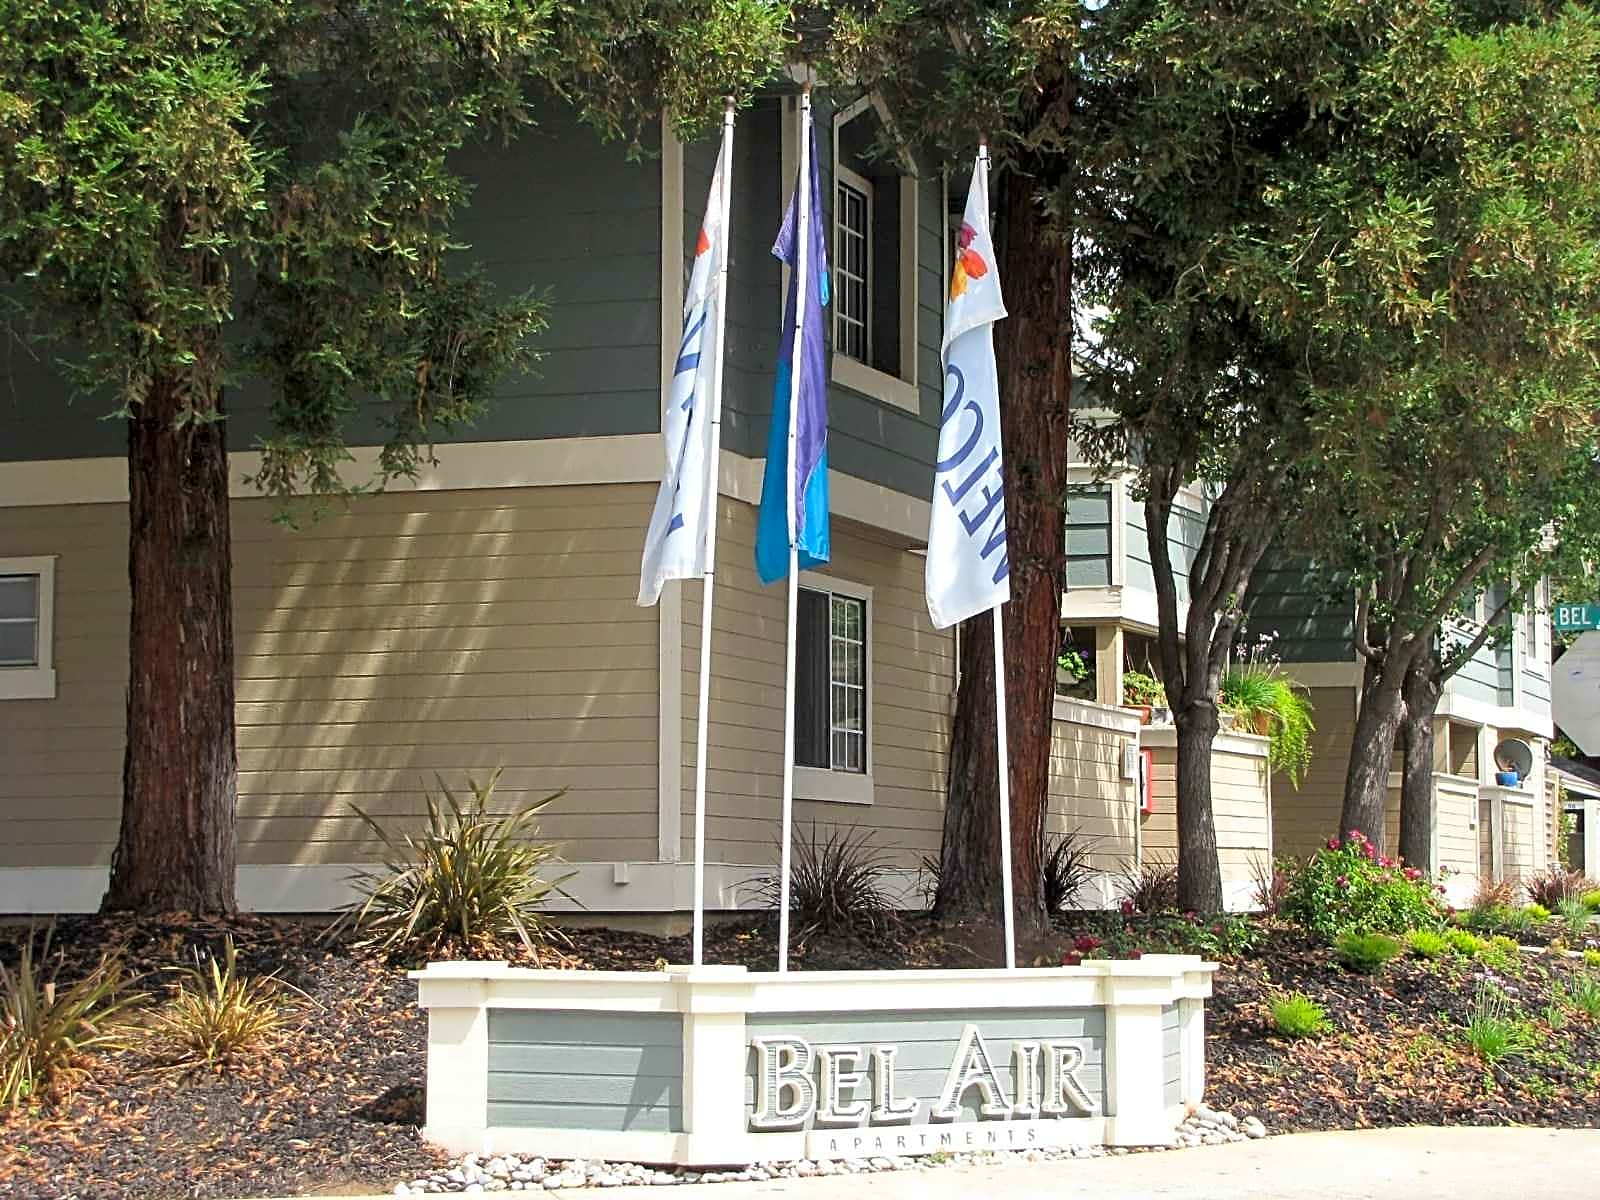 Bel Air for rent in Concord